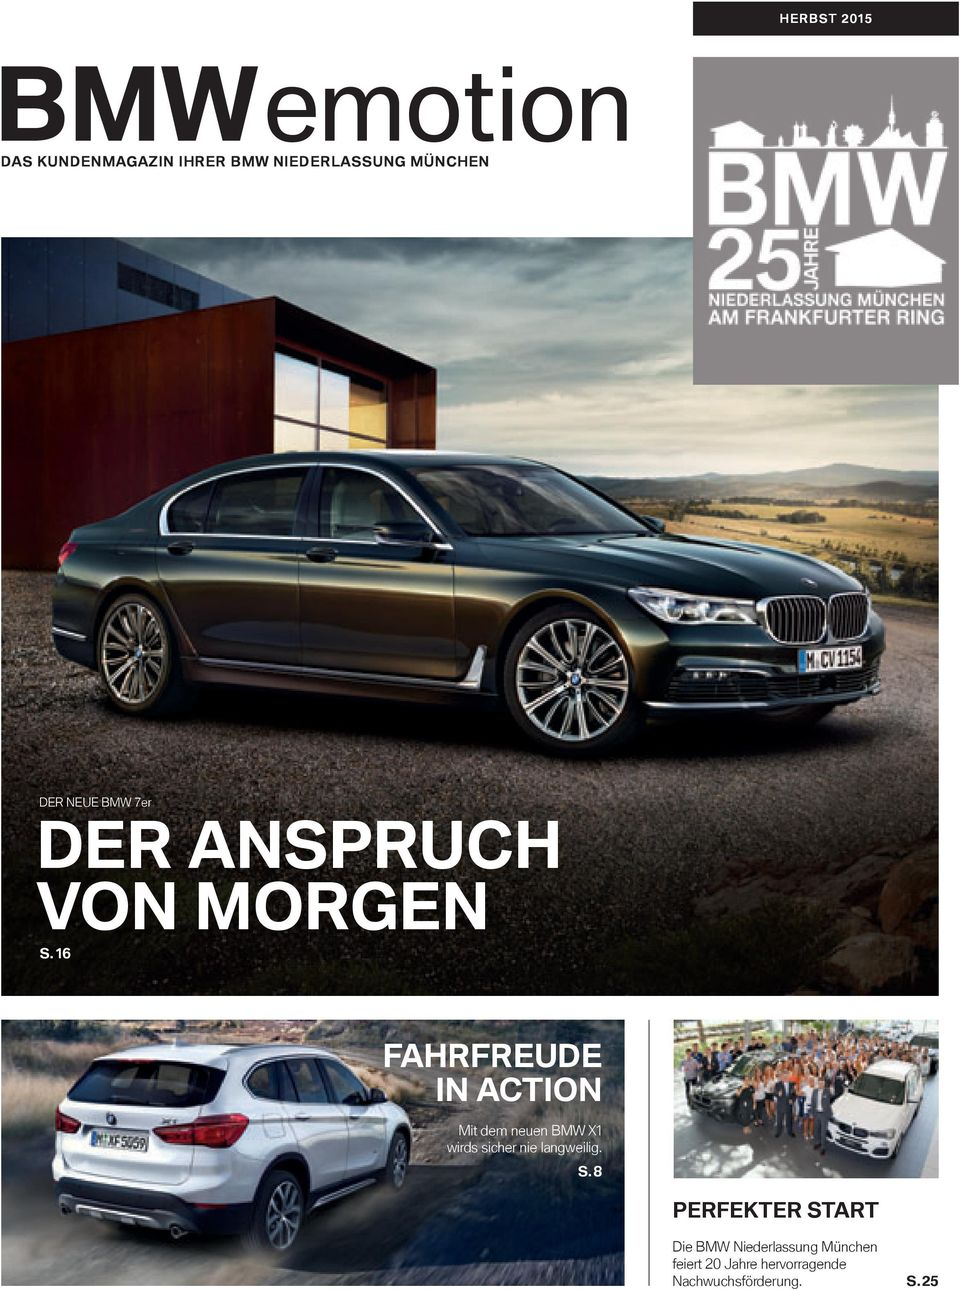 herbst bmw das kundenmagazin ihrer bmw niederlassung m nchen pdf. Black Bedroom Furniture Sets. Home Design Ideas